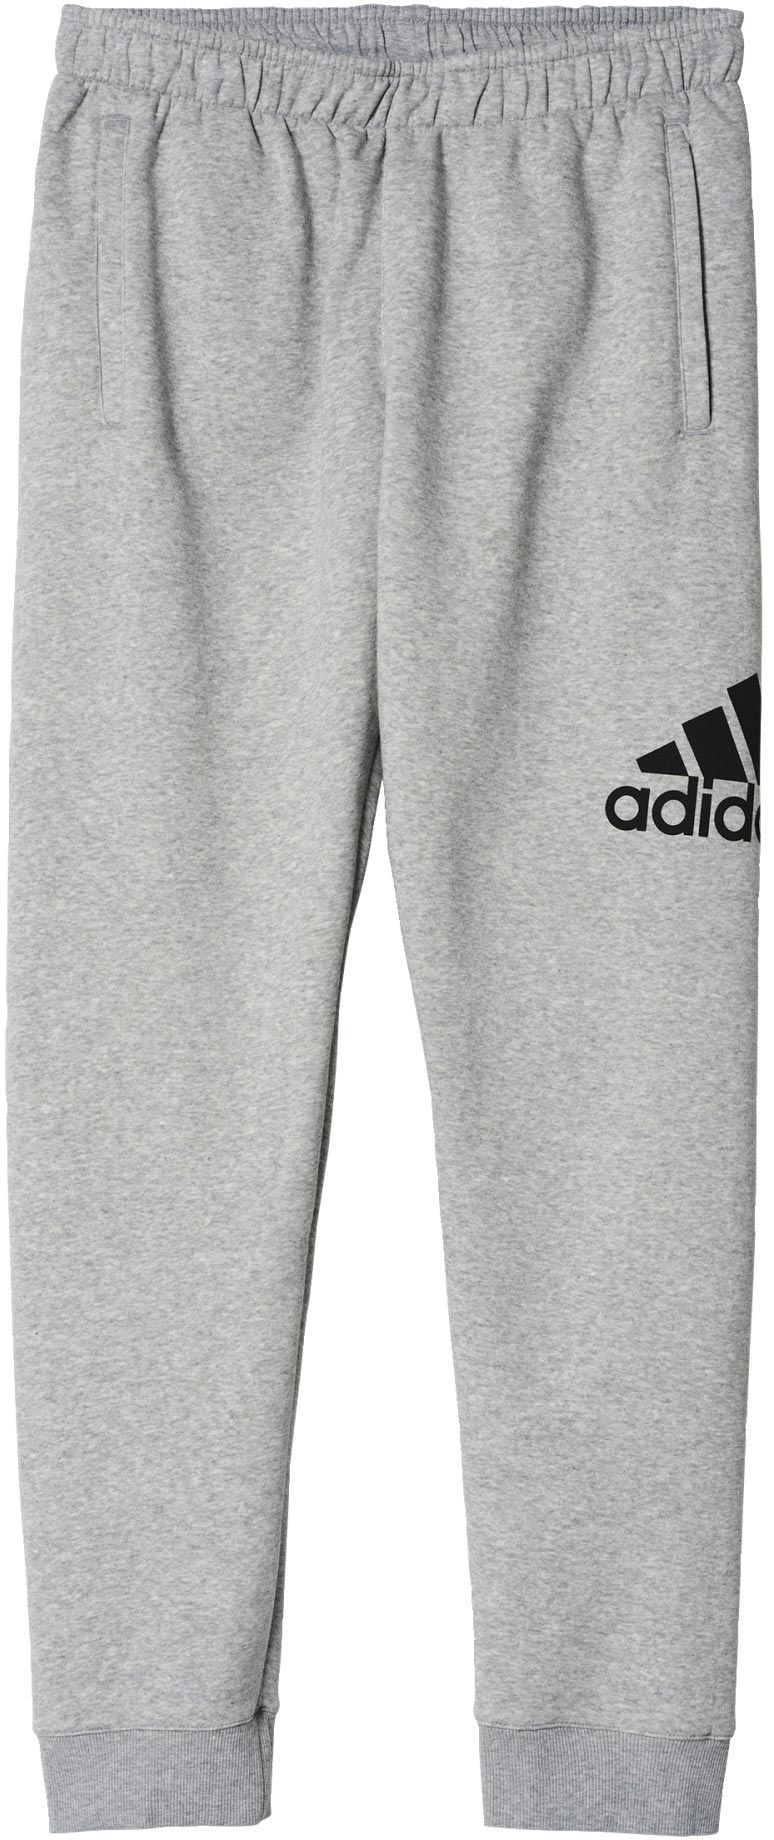 order online latest design attractive price adidas SPORT ESSENTIALS LOGO PANT CLOSED | sportisimo.cz